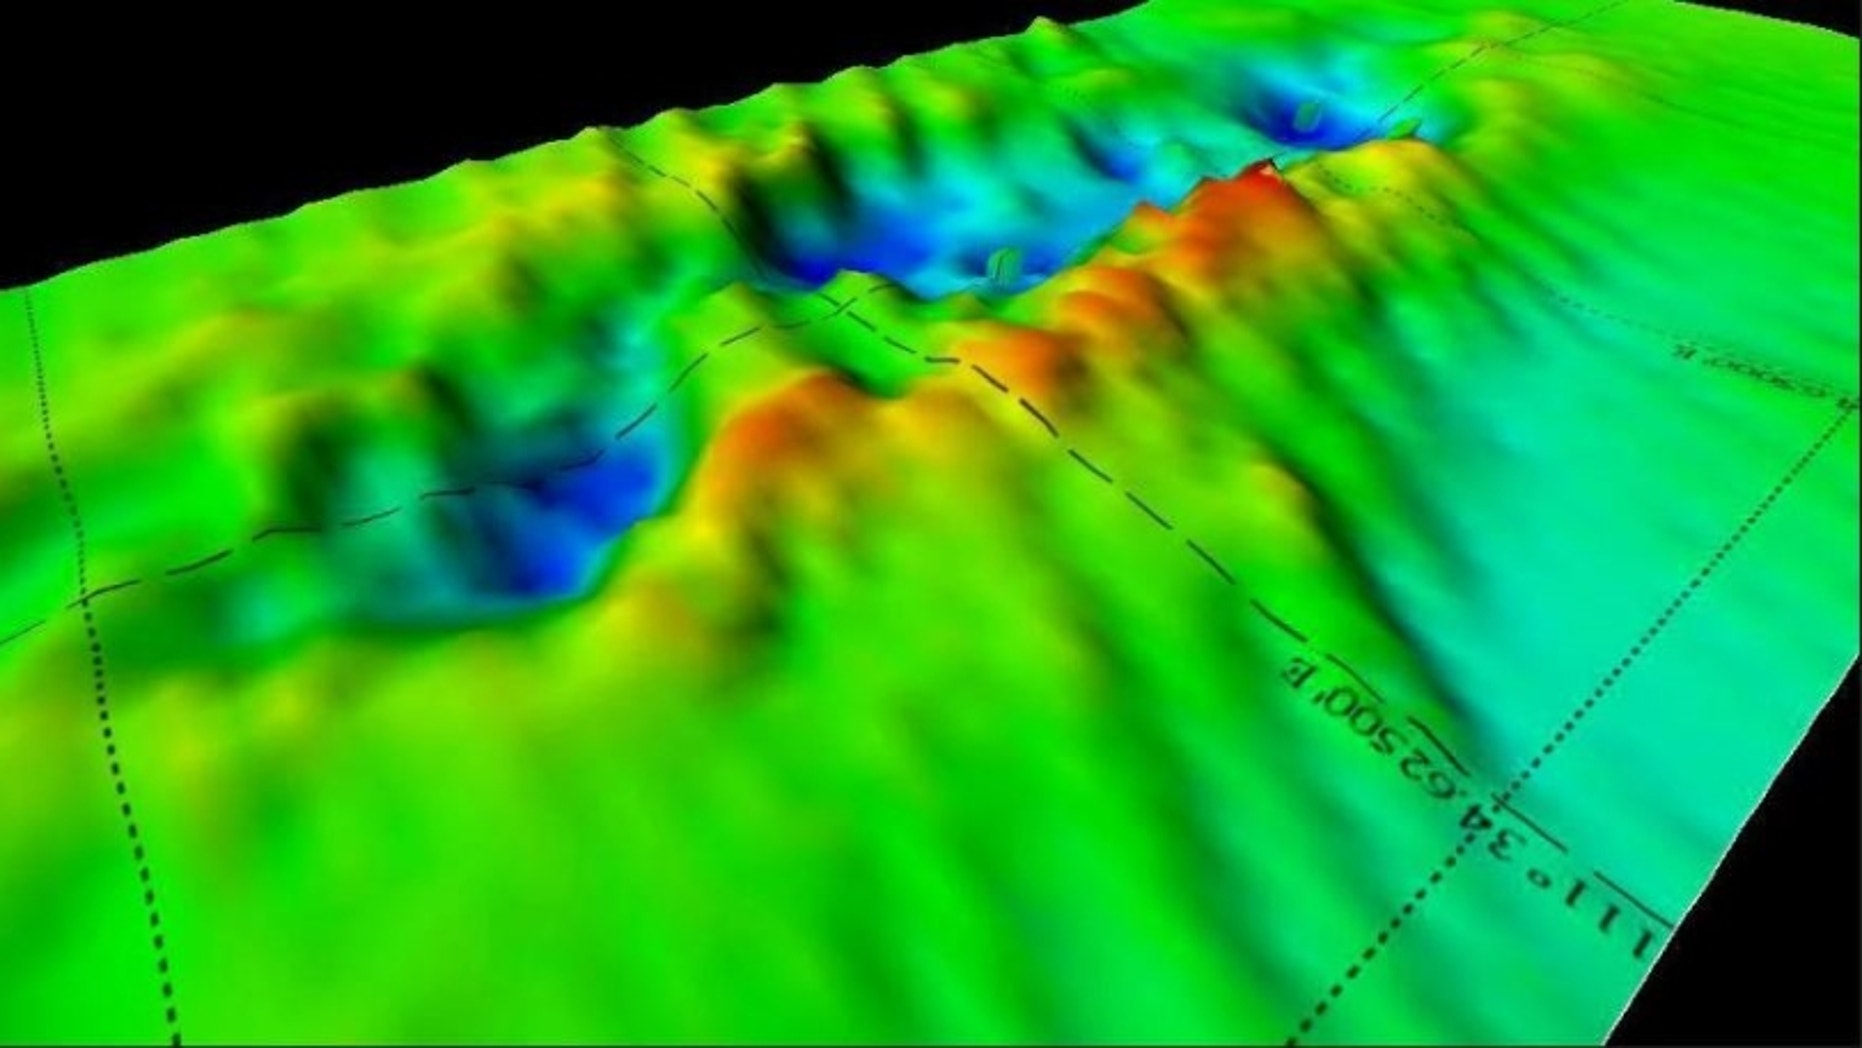 A 3D sonar scan of the remains of British warship HMS Electra, one of several war wrecks in the Java Sea thought to have been plundered by metal scavenging operators.